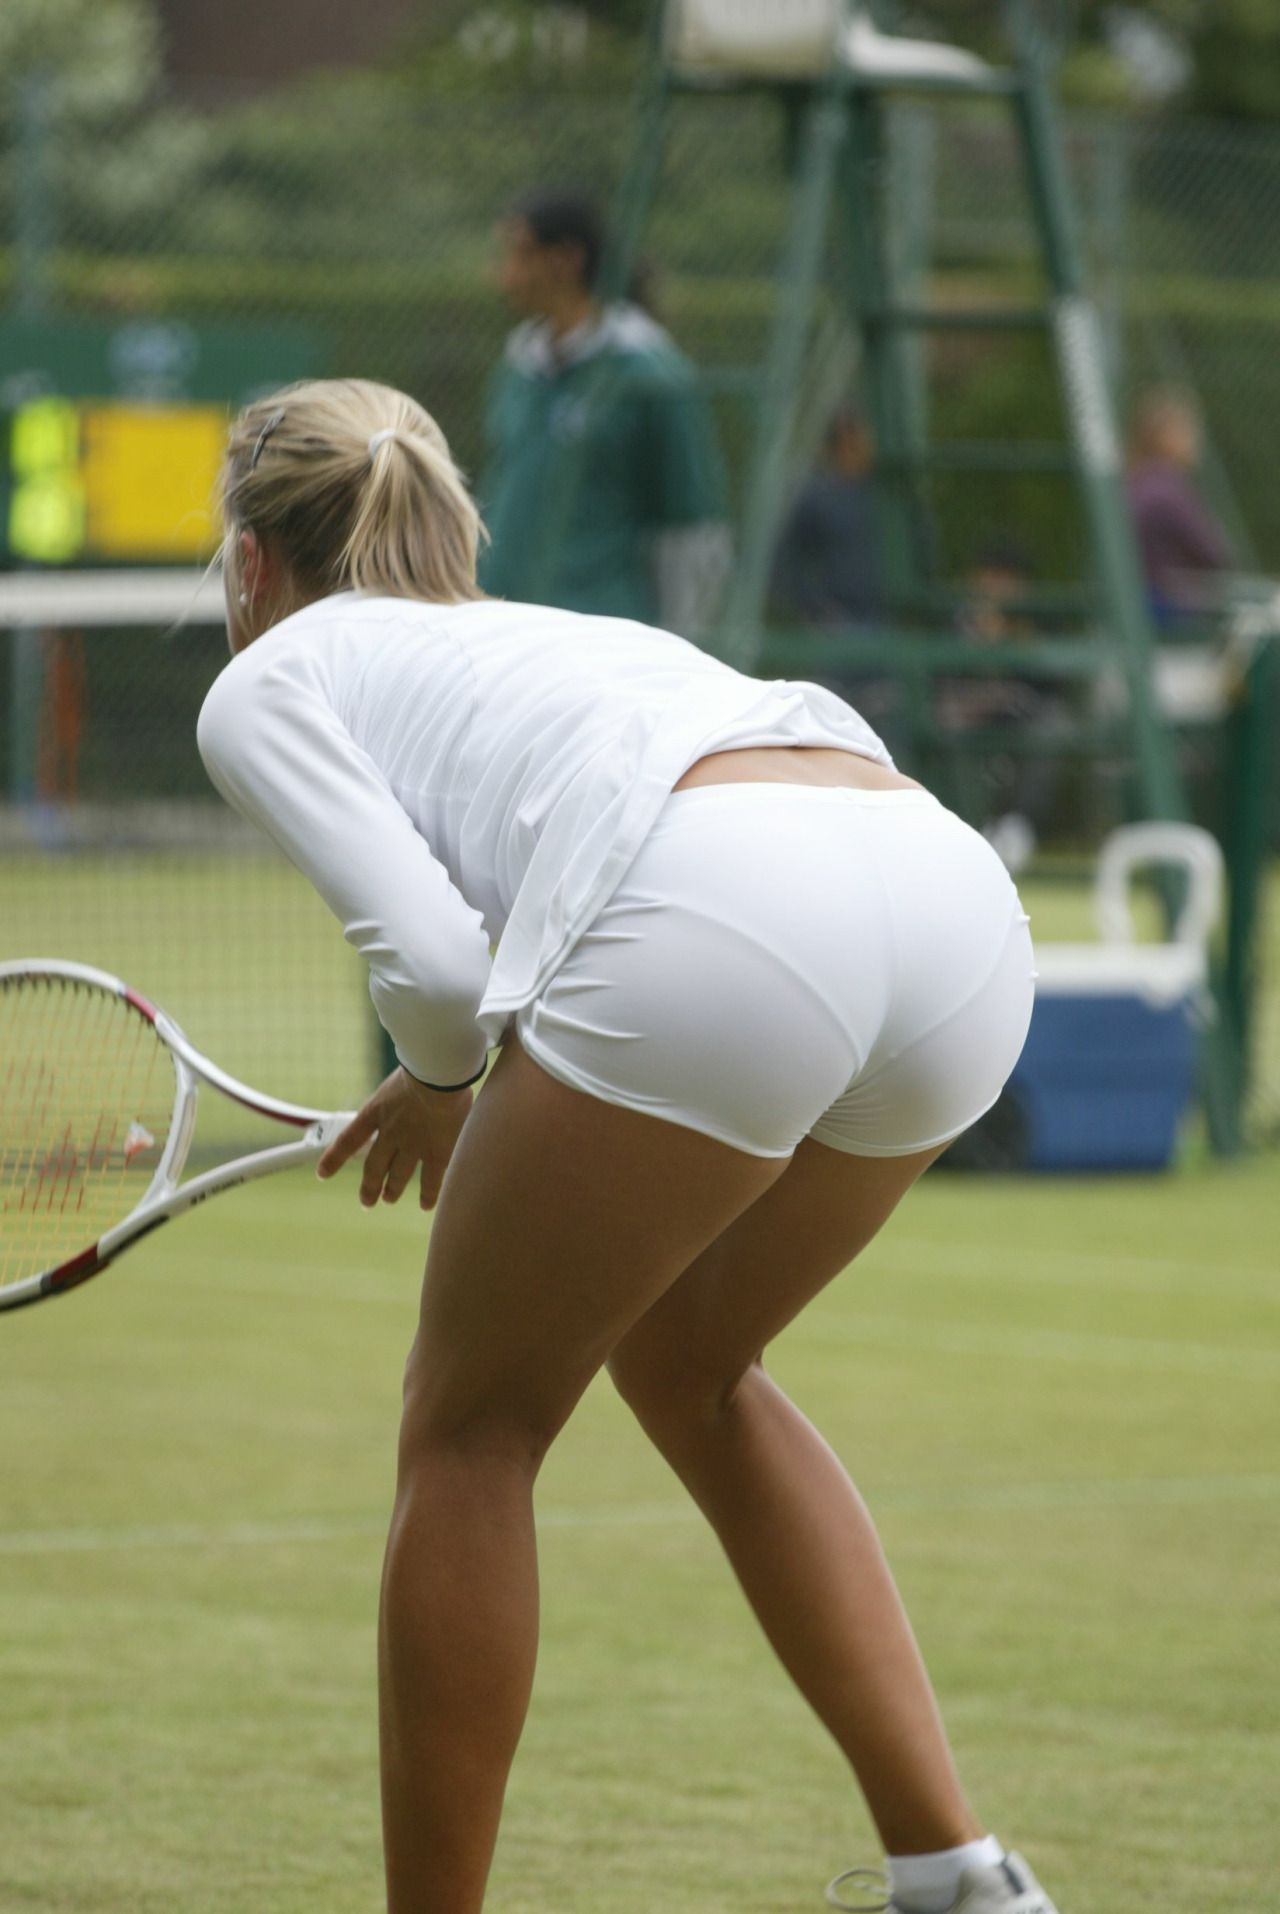 Commit error. Tennis maria sharapova panties